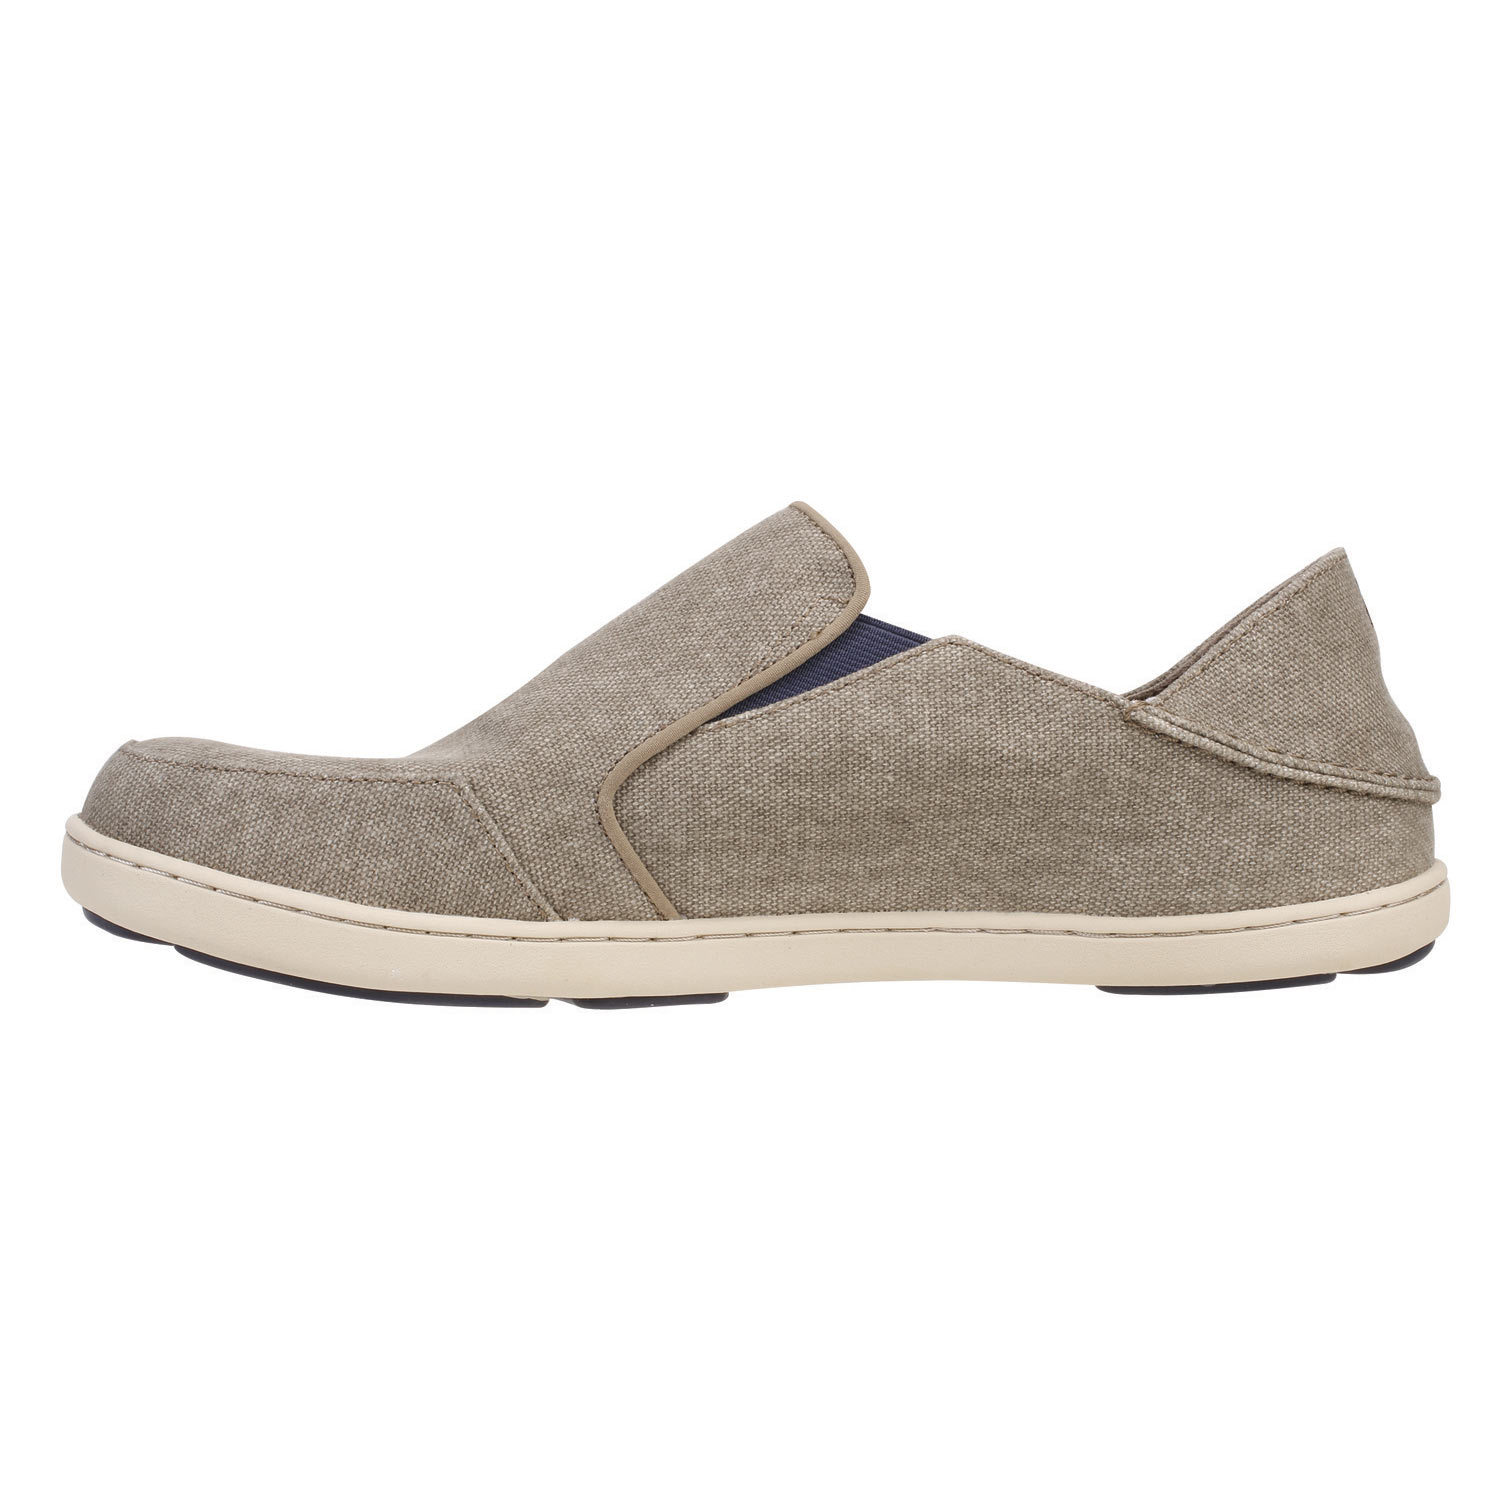 Olukai Mens Nohea Lole Slip On Shoes West Marine Sperry Wiring Diagram Enlarged View Of Picture Opens Dialog